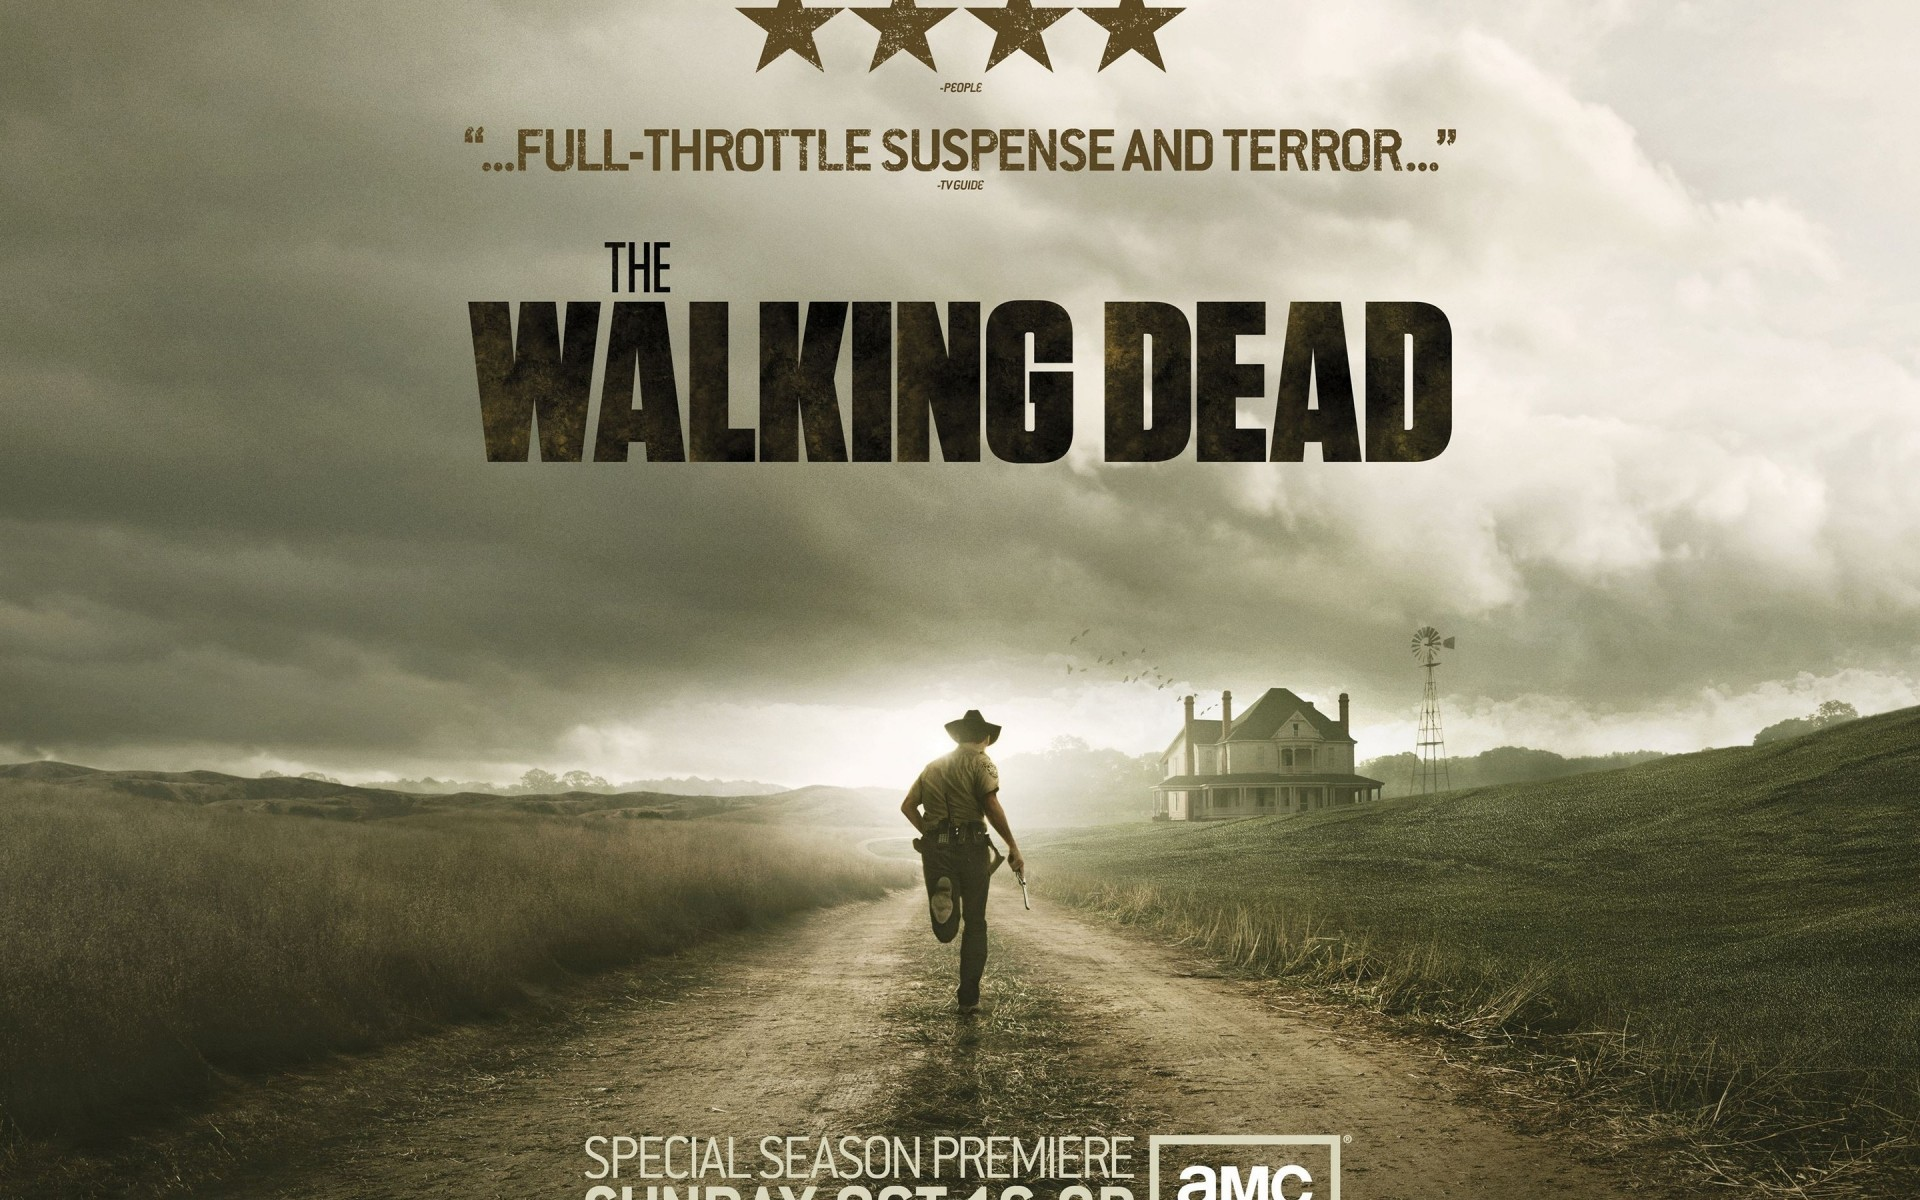 The Walking Dead Tv Show Phone Wallpapers